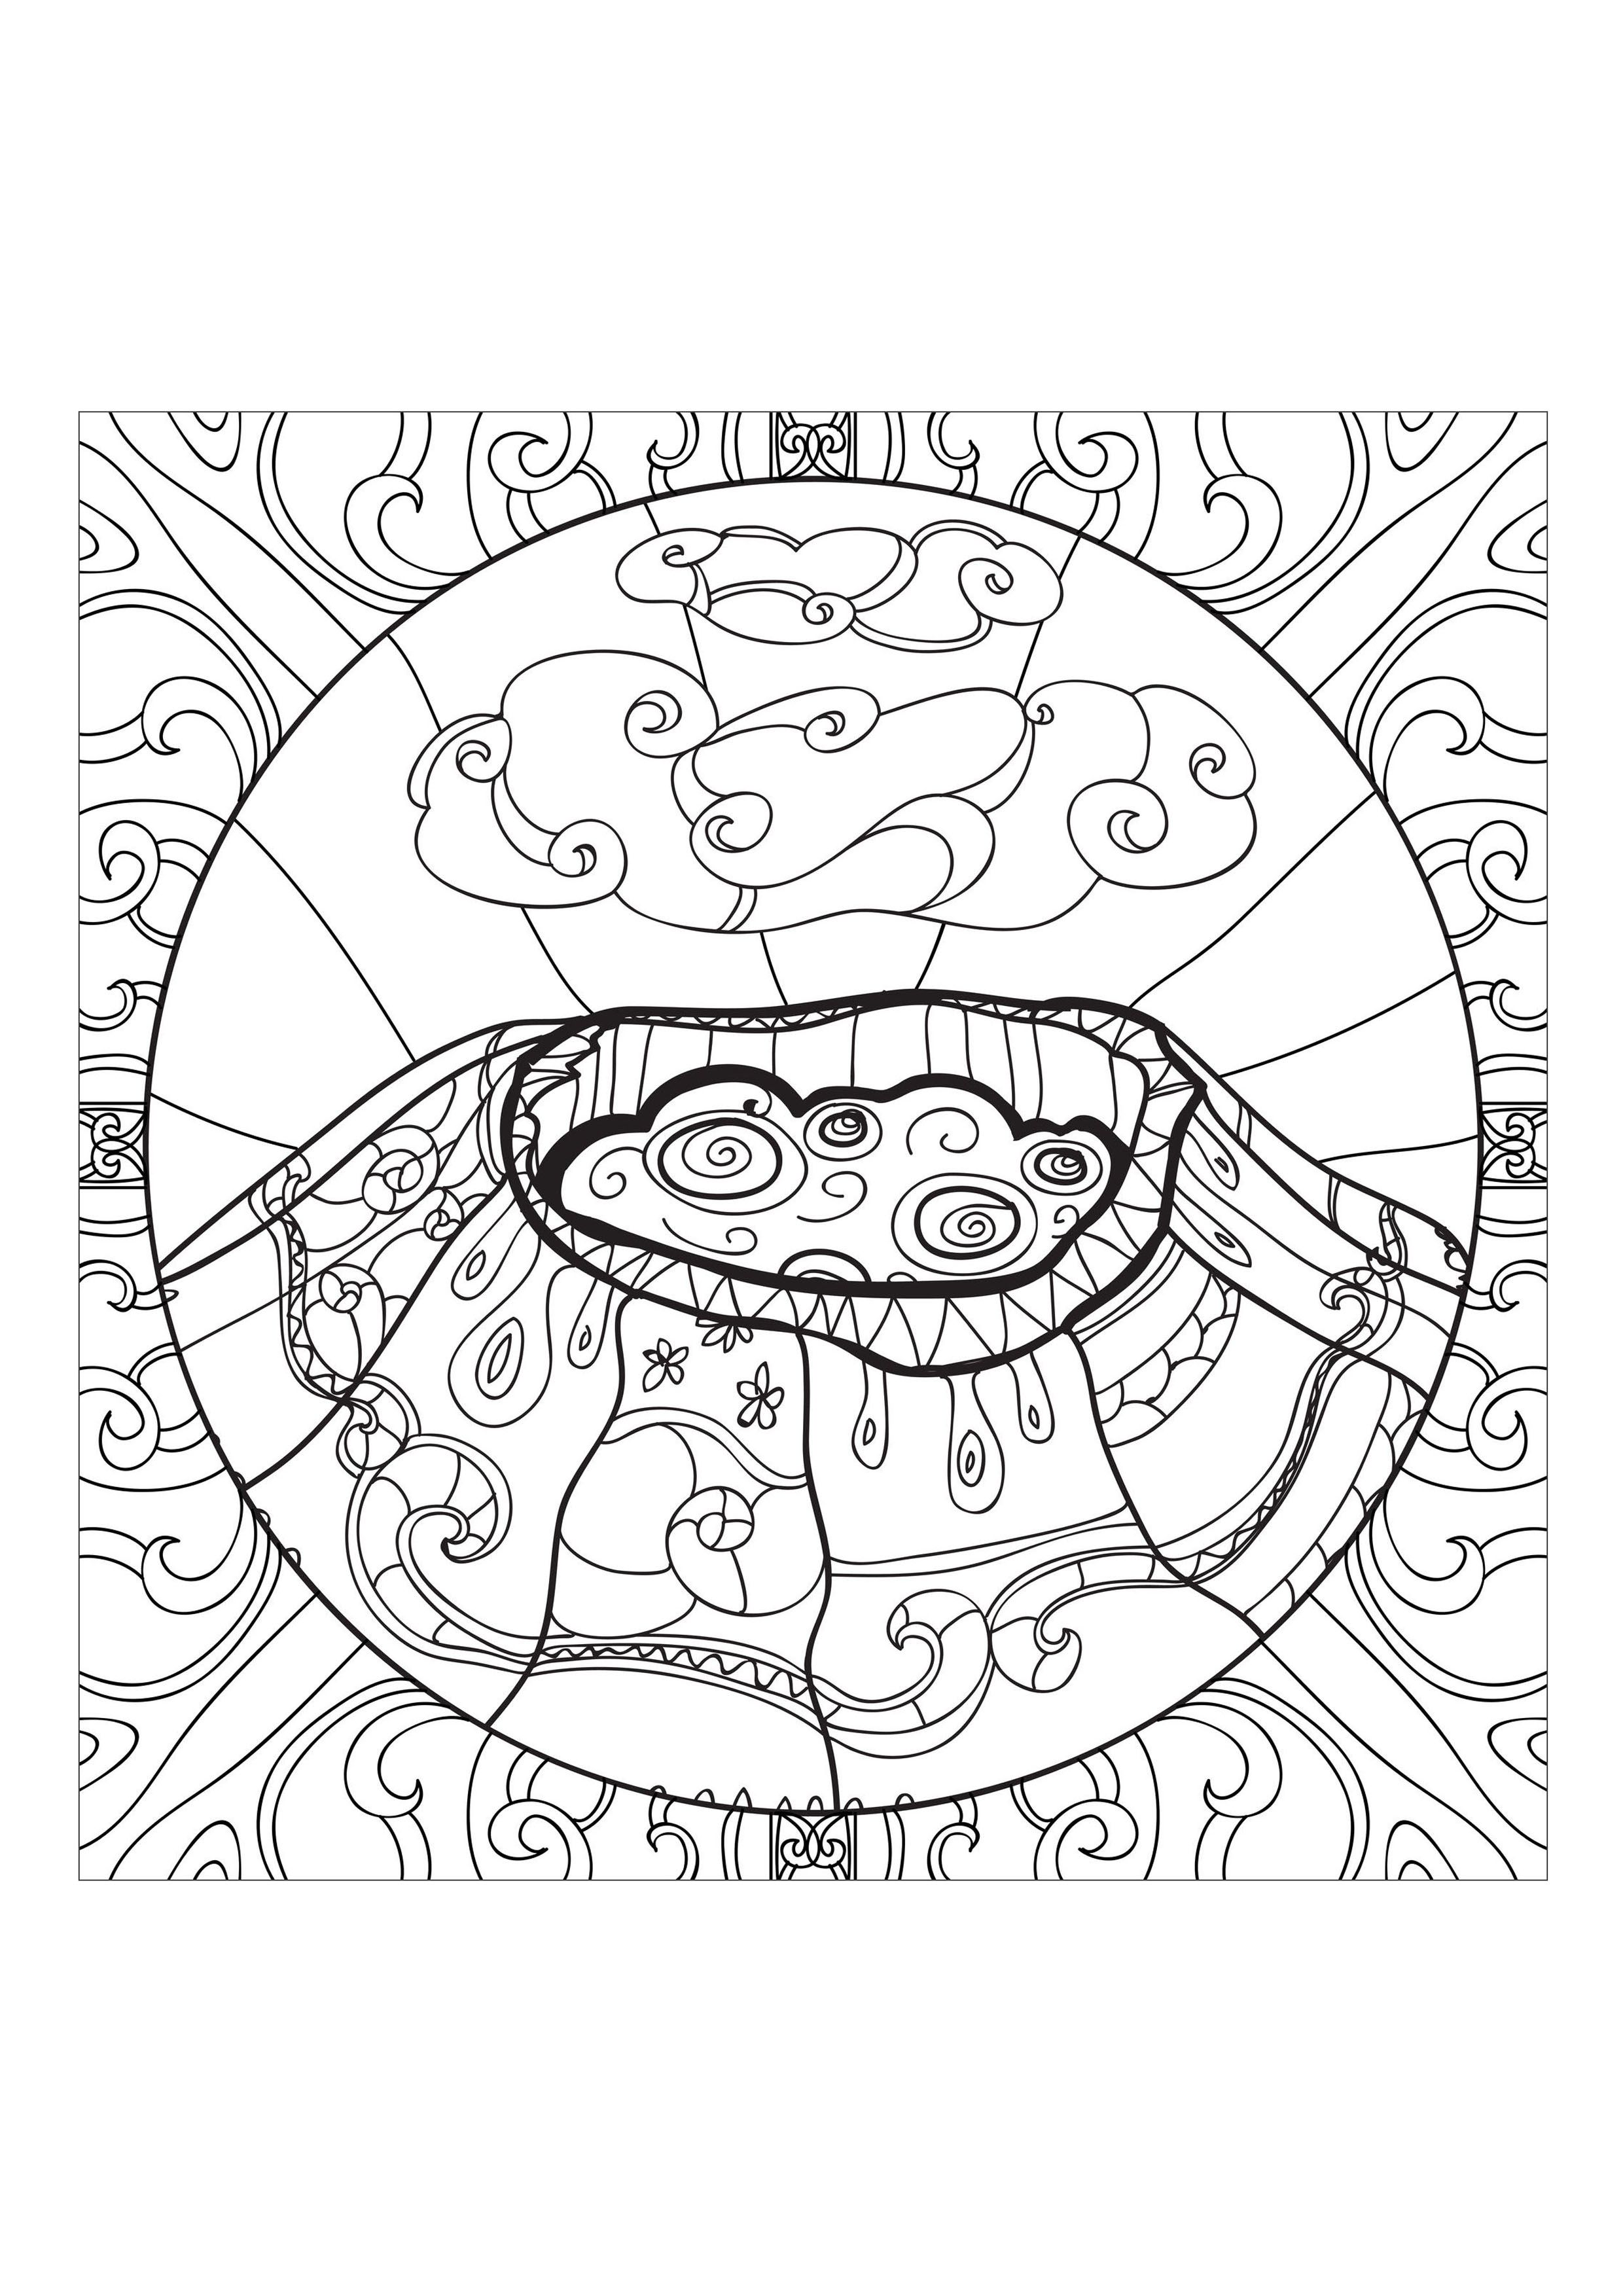 Coloring Page Adults Volcano 1 From The Gallery Zen Anti